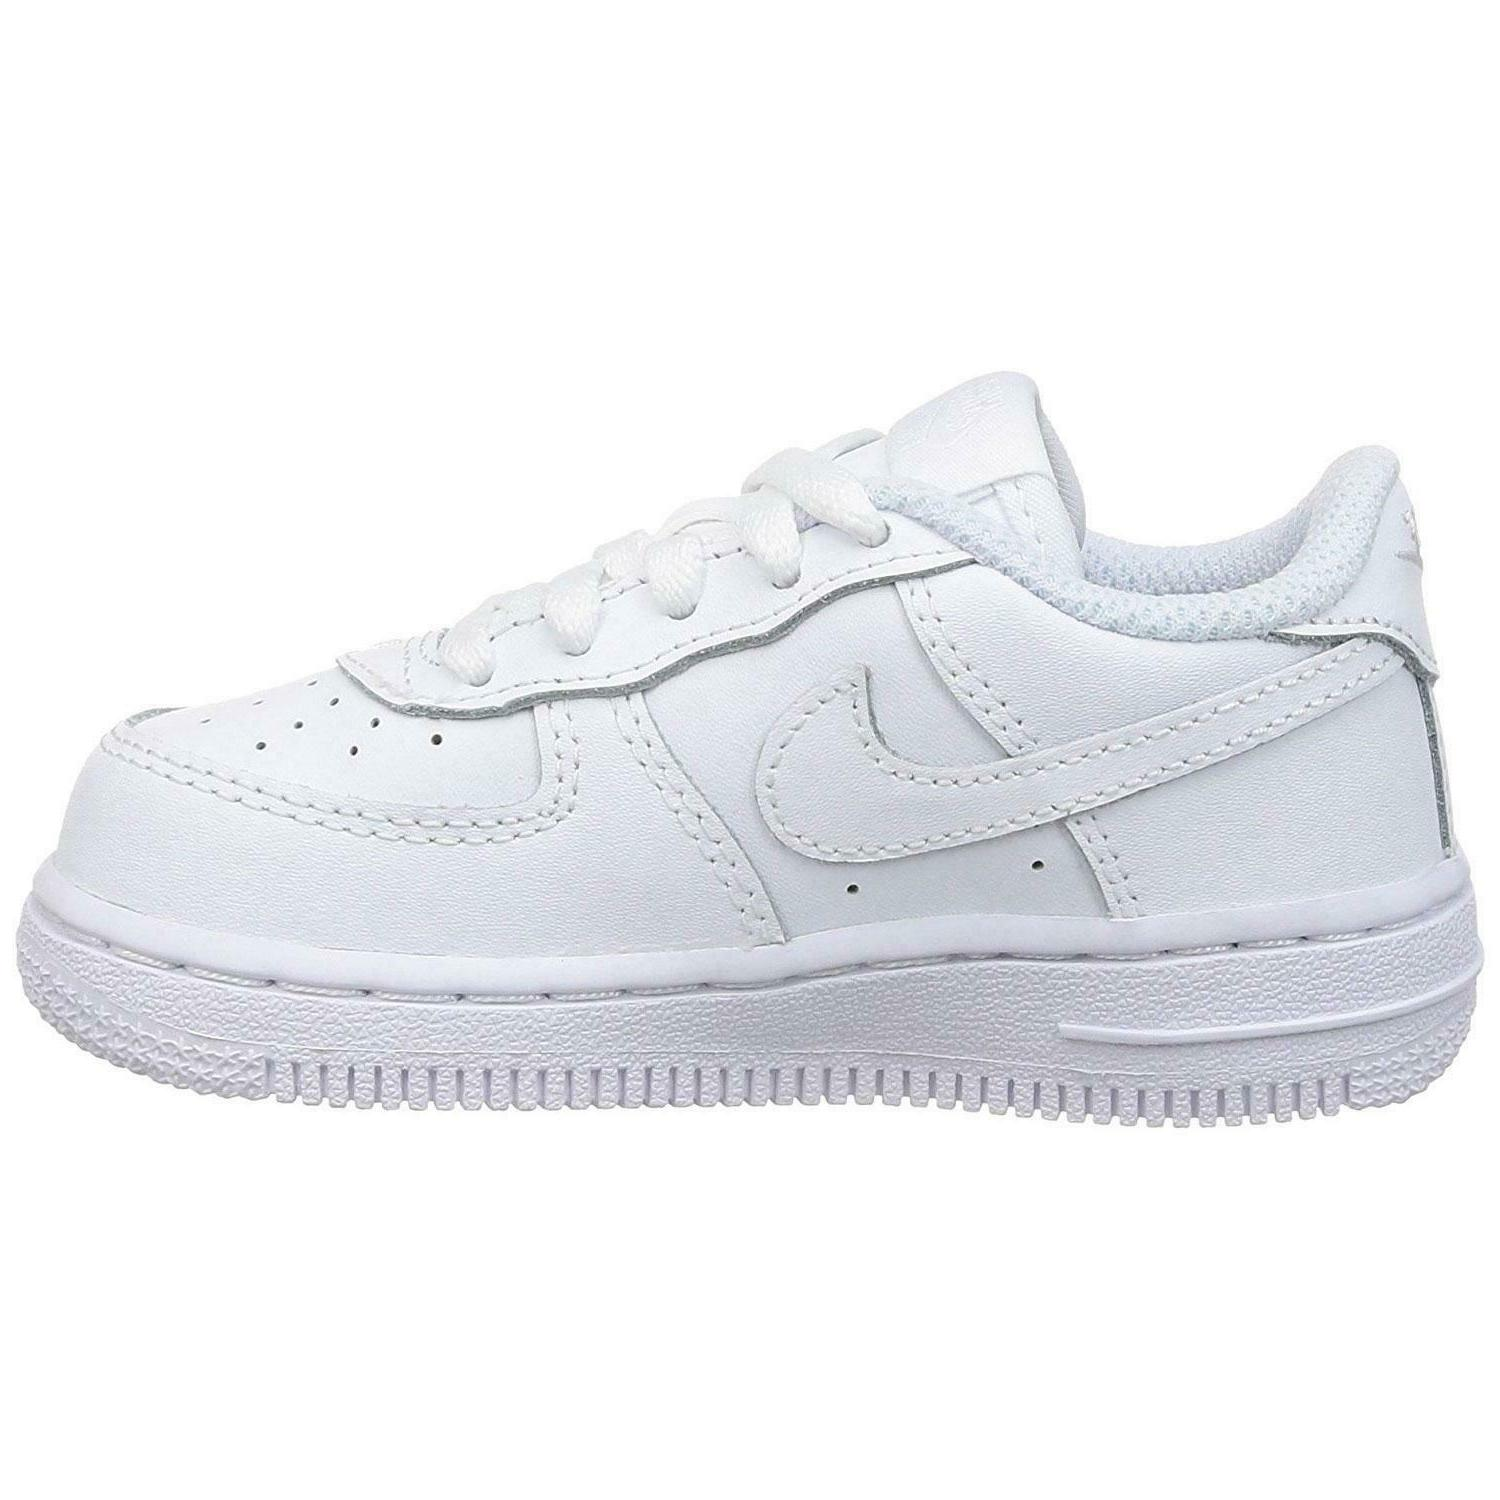 Nike 1 Shoes AUTHENTIC White 314194-117